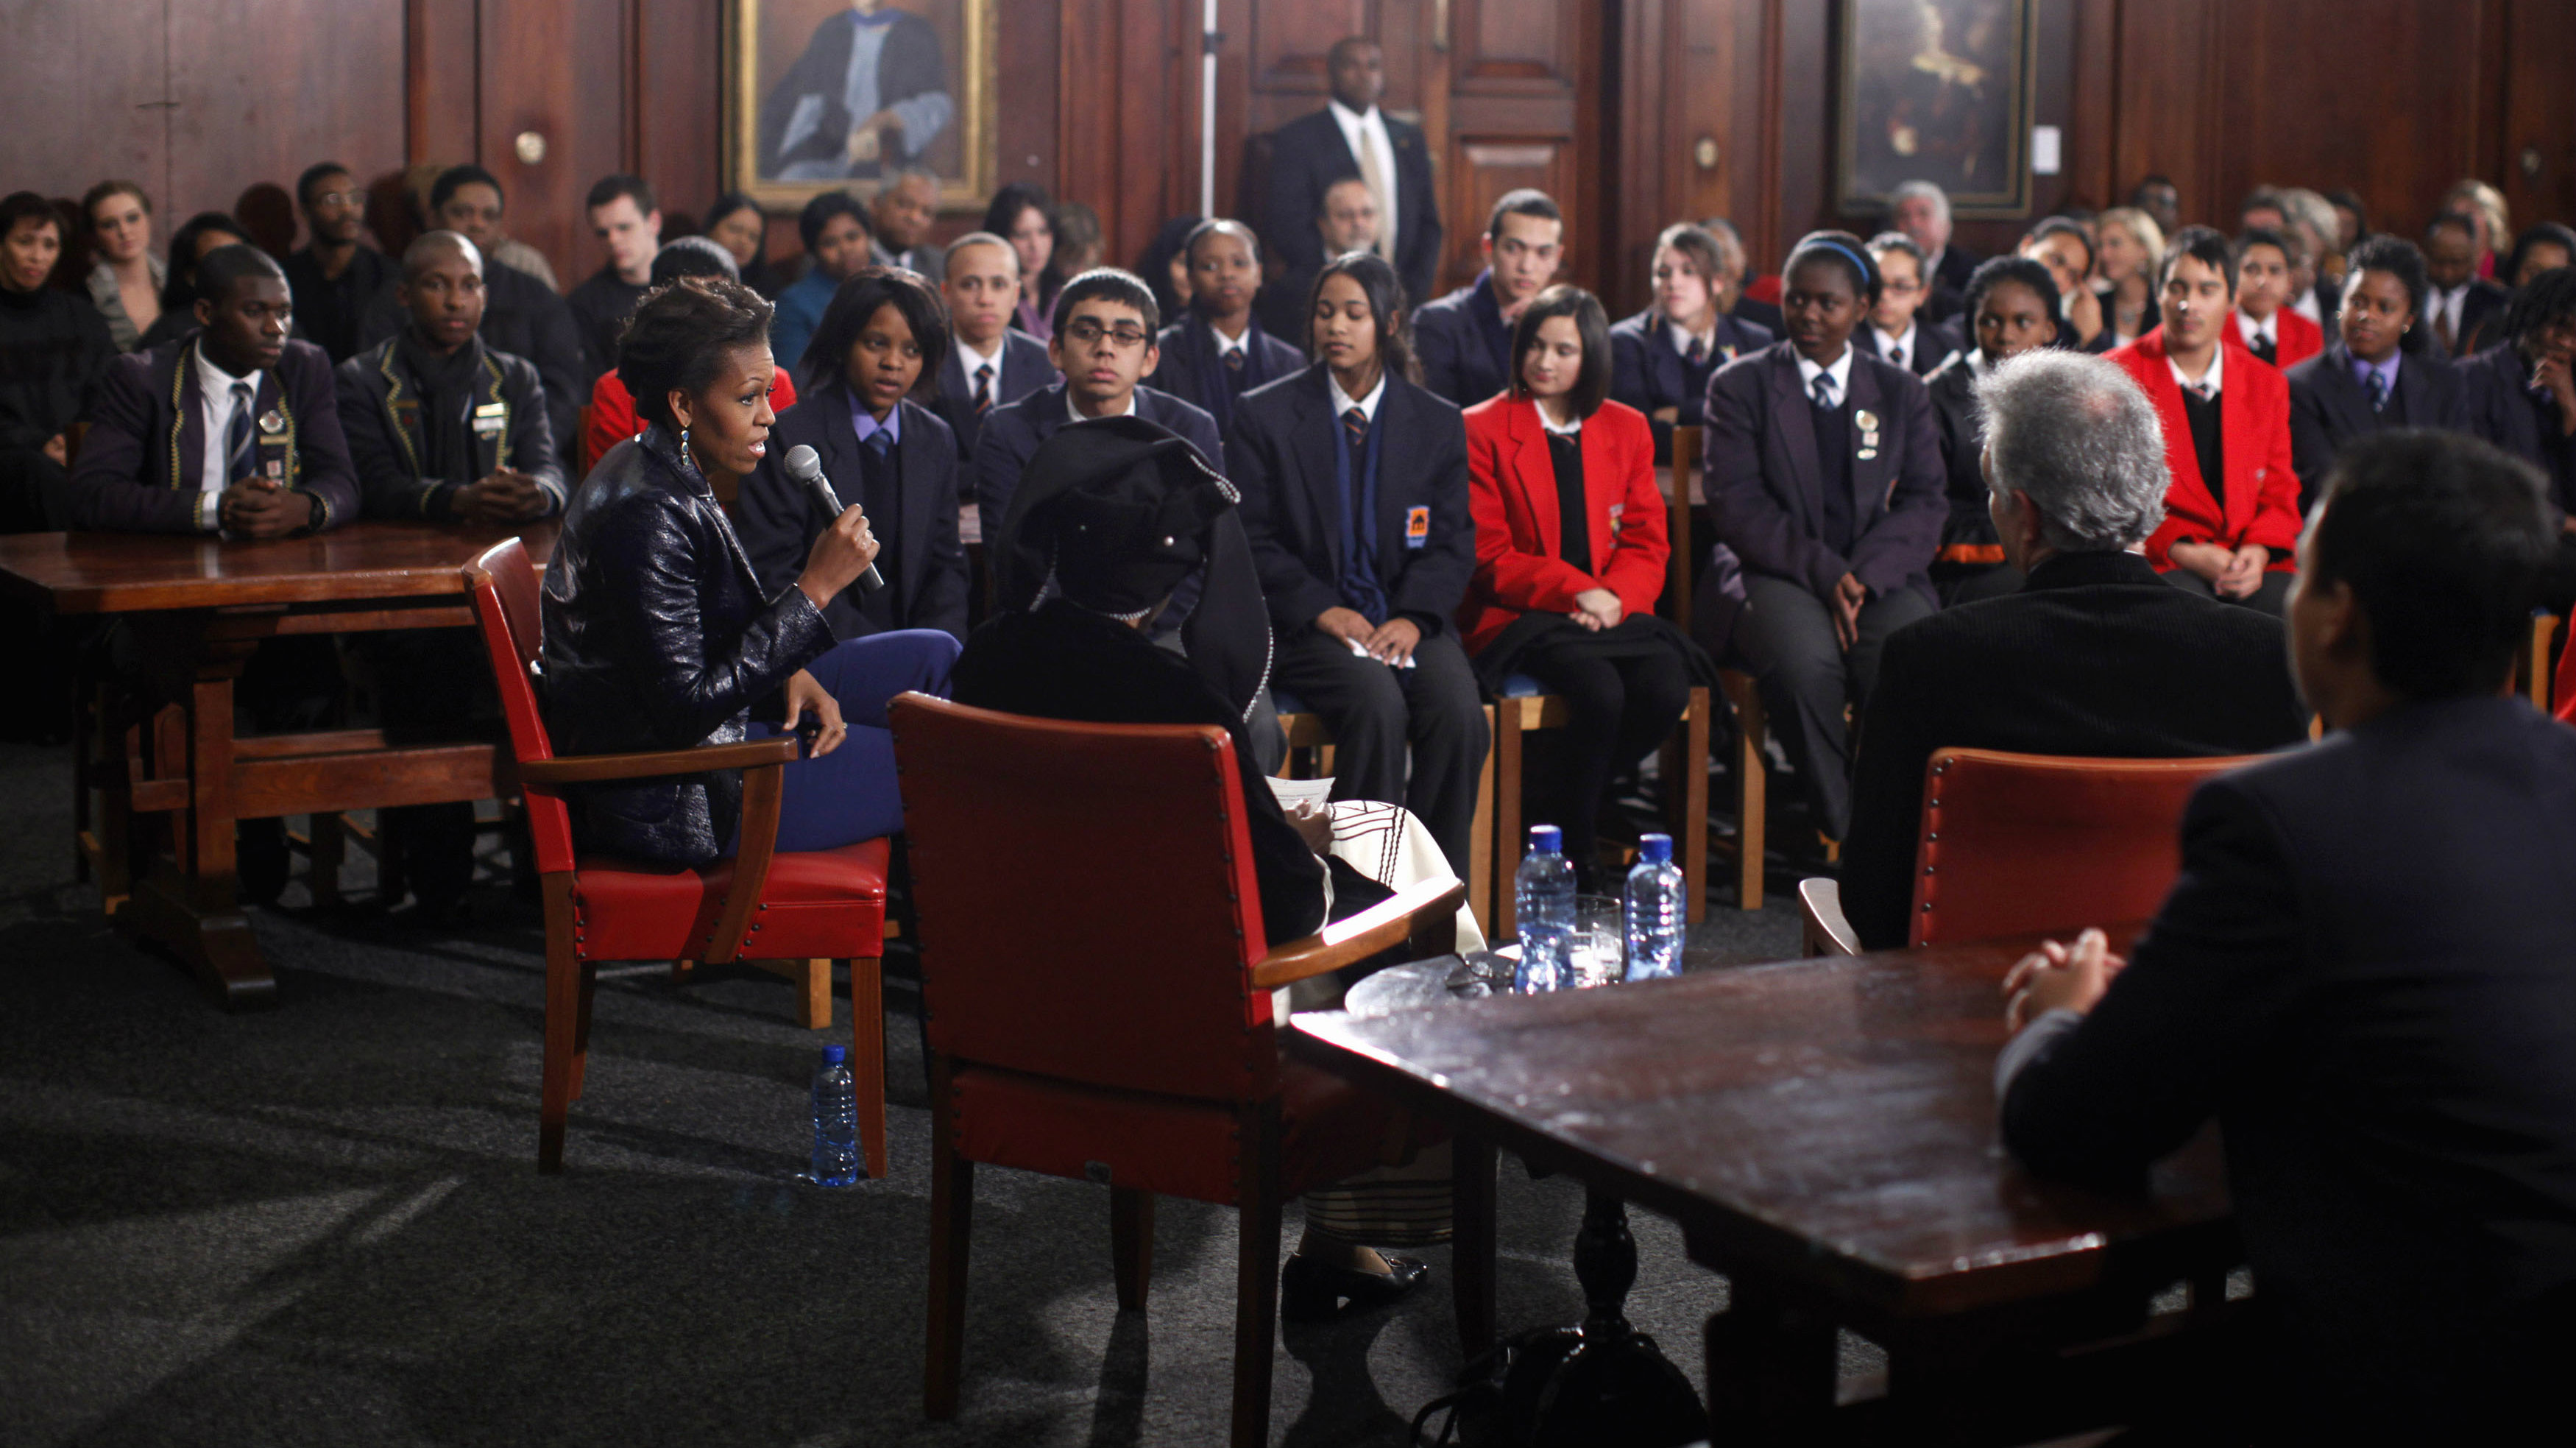 U.S. first lady Michelle Obama answers students' questions at the University of Cape Town in Cape Town June 23, 2011.